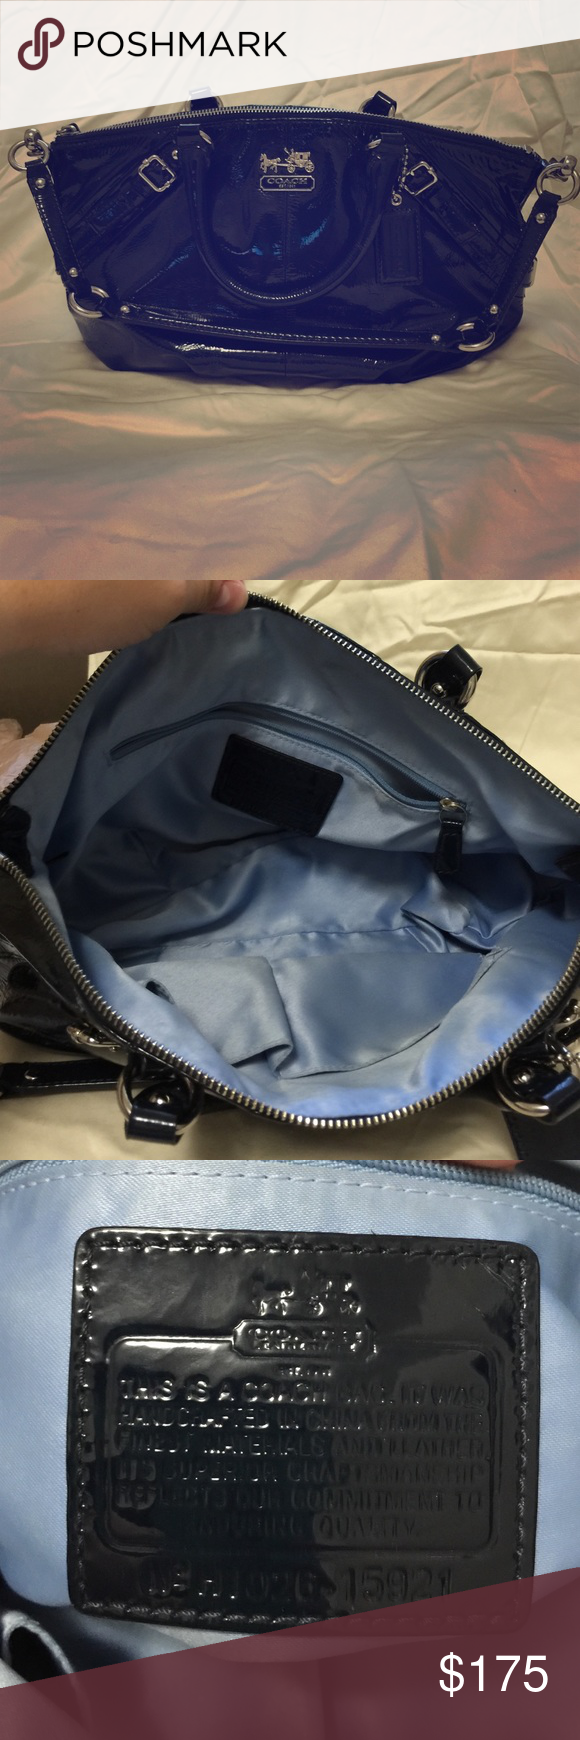 """Coach Madison Sophia Patent Leather Cobalt Satchel Authentic Coach Madison Sophia Patent Leather Satchel Convertible Purse in Cobalt  Style 15921 Zip top closureCoach logo on frontSilver tone hardwareInside zip, cell phone and multifunction pocketsMeasures at top 14"""", at bottom 12"""" (L) x 9.5"""" (H) x 3.25"""" (W), handles with 5"""" drop, plus detachable shoulder strap with 9.5""""dropa few very faint markings on interior100% authentic with original Coach logo dust bagcomes from smoke free home Coach…"""